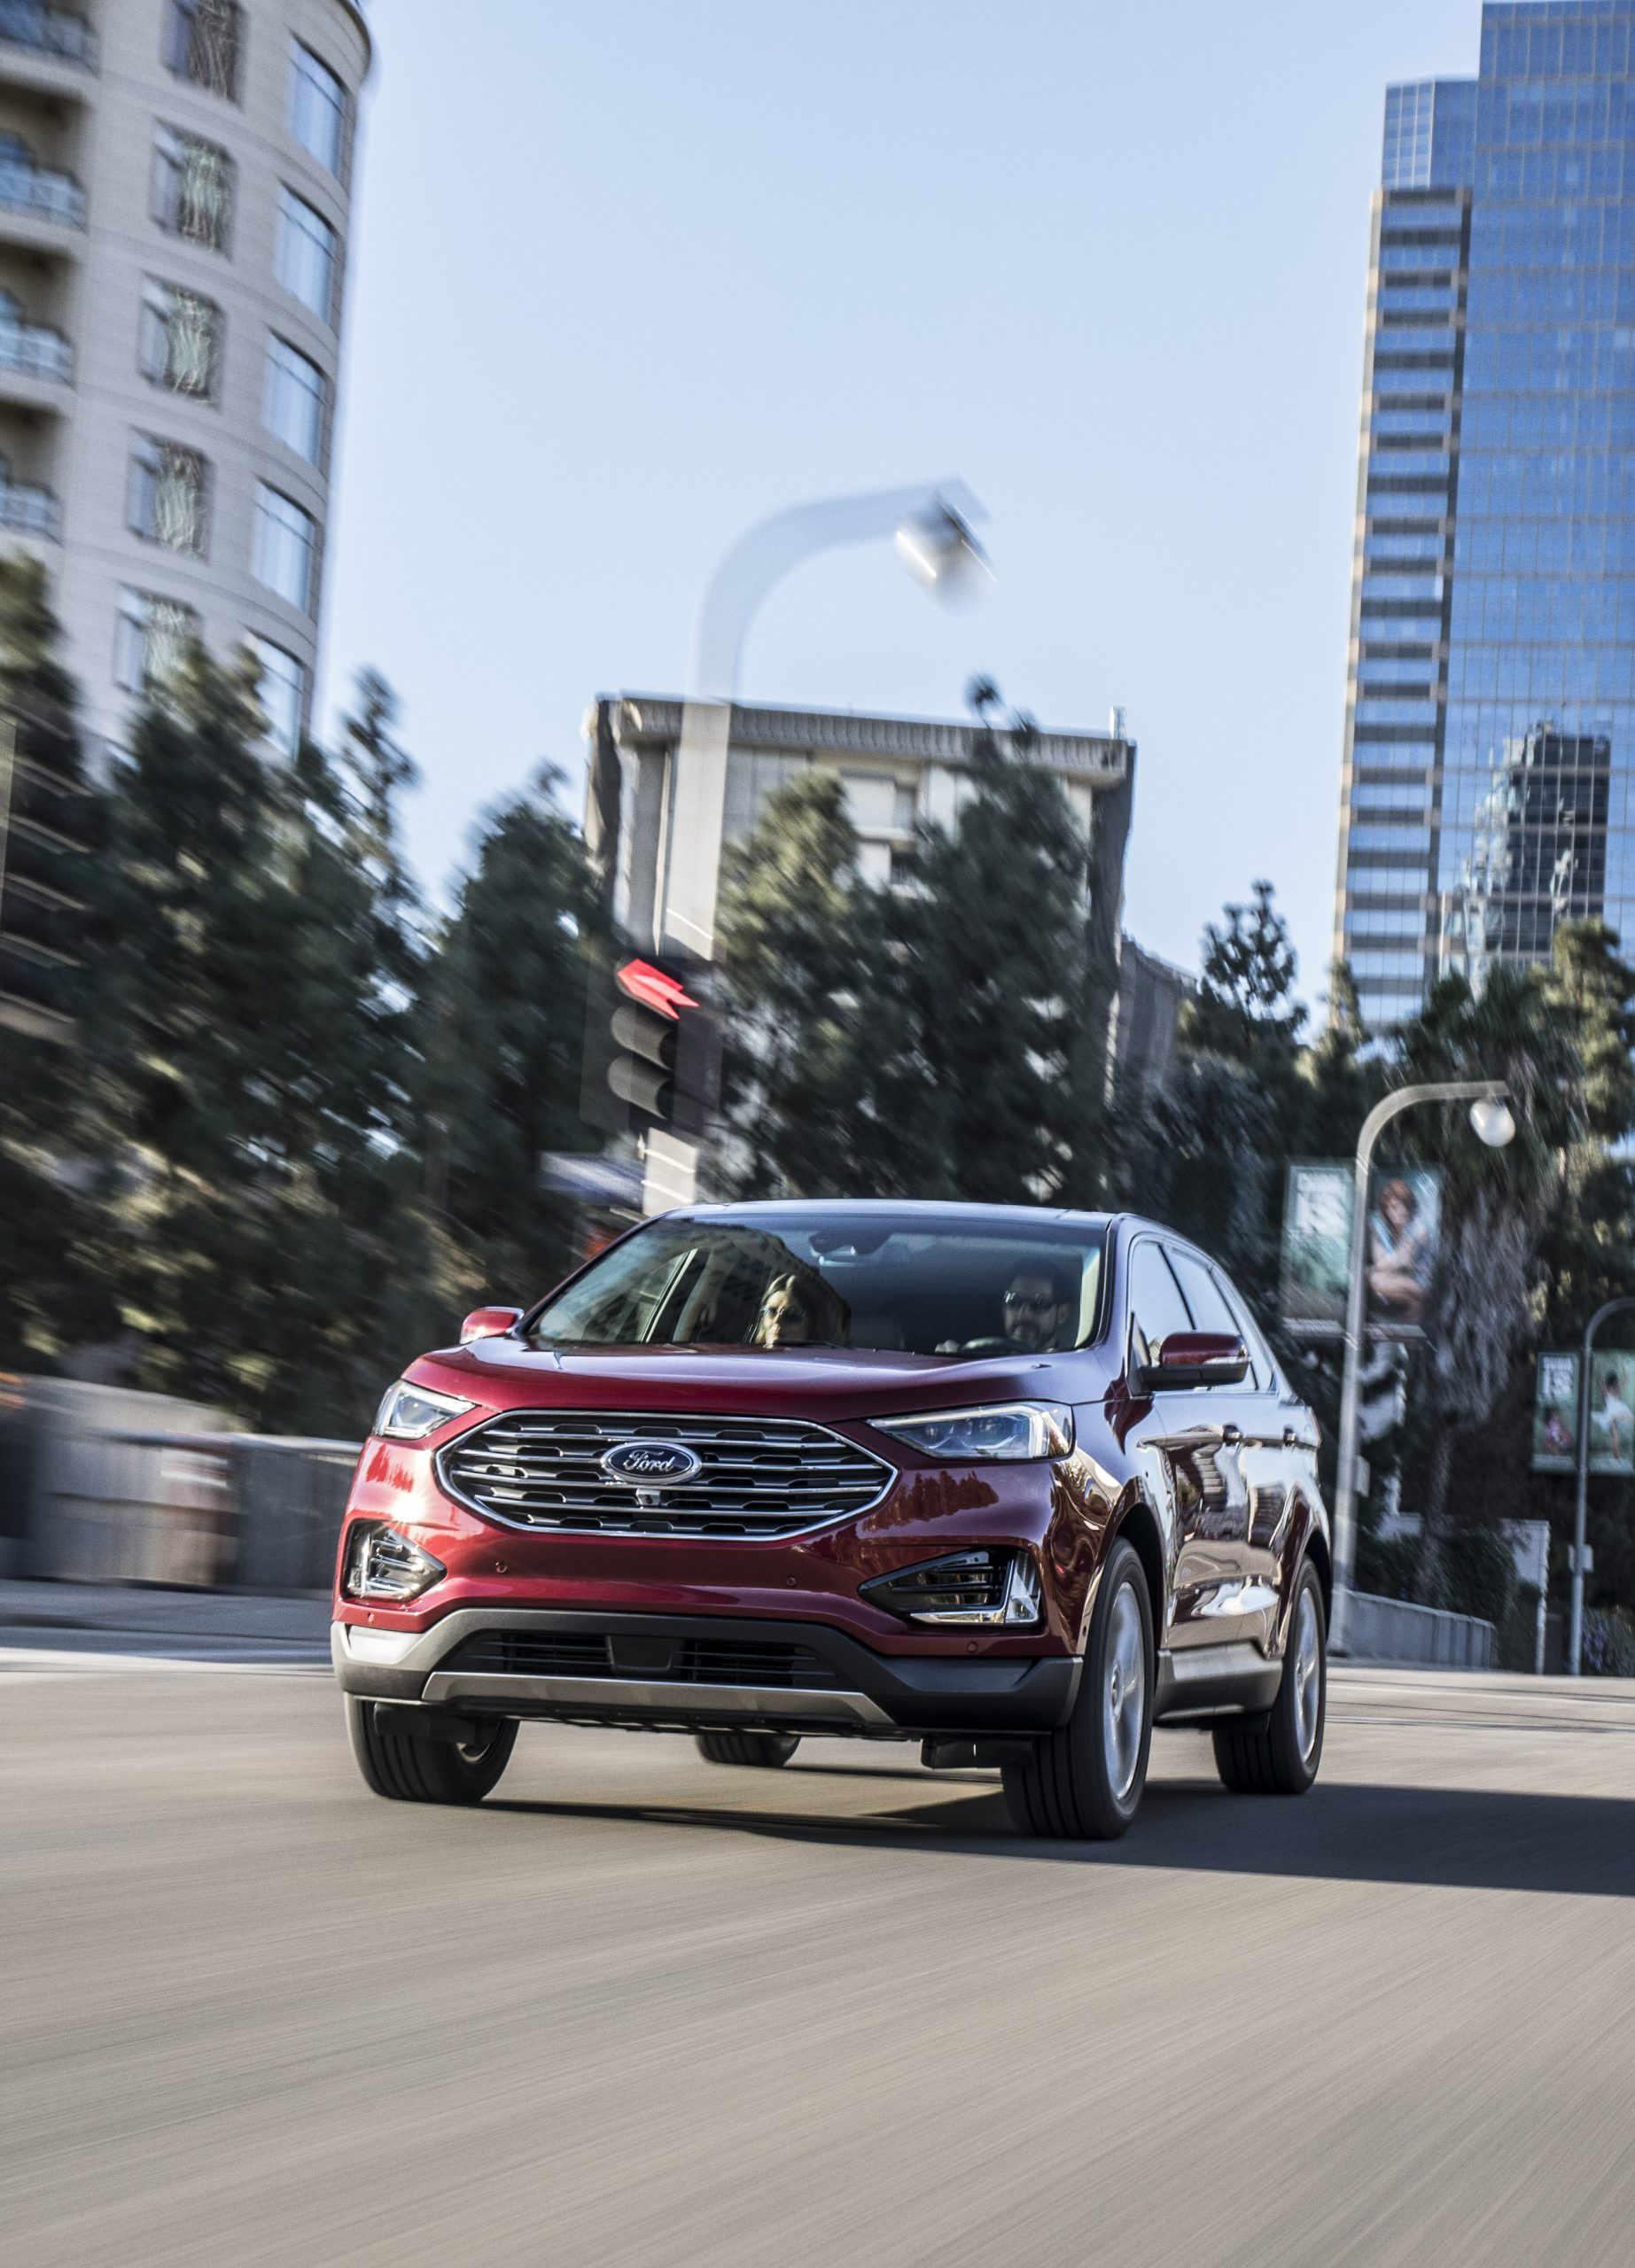 Ford Begins Introducing The Coveted St Brand To Its Suv Lineup With The Unveiling Of The All New Edge St Today Building On Its Best Ever Suv Sales Year In